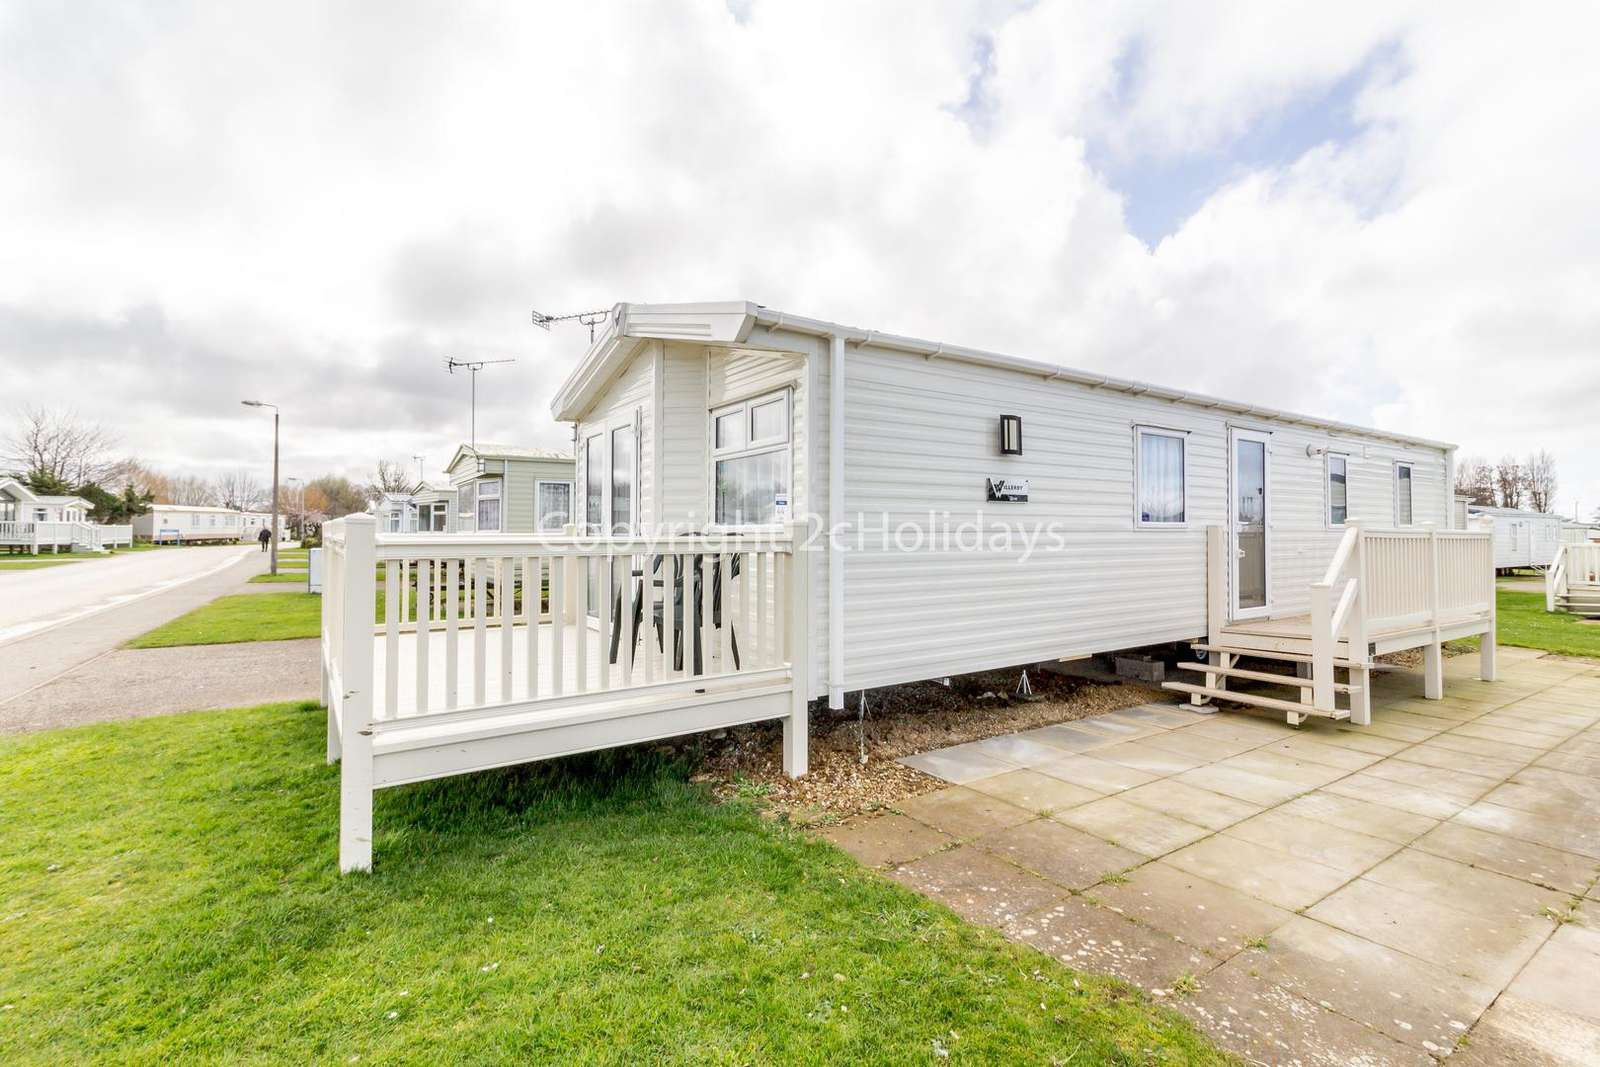 Luxury mobile home with decking